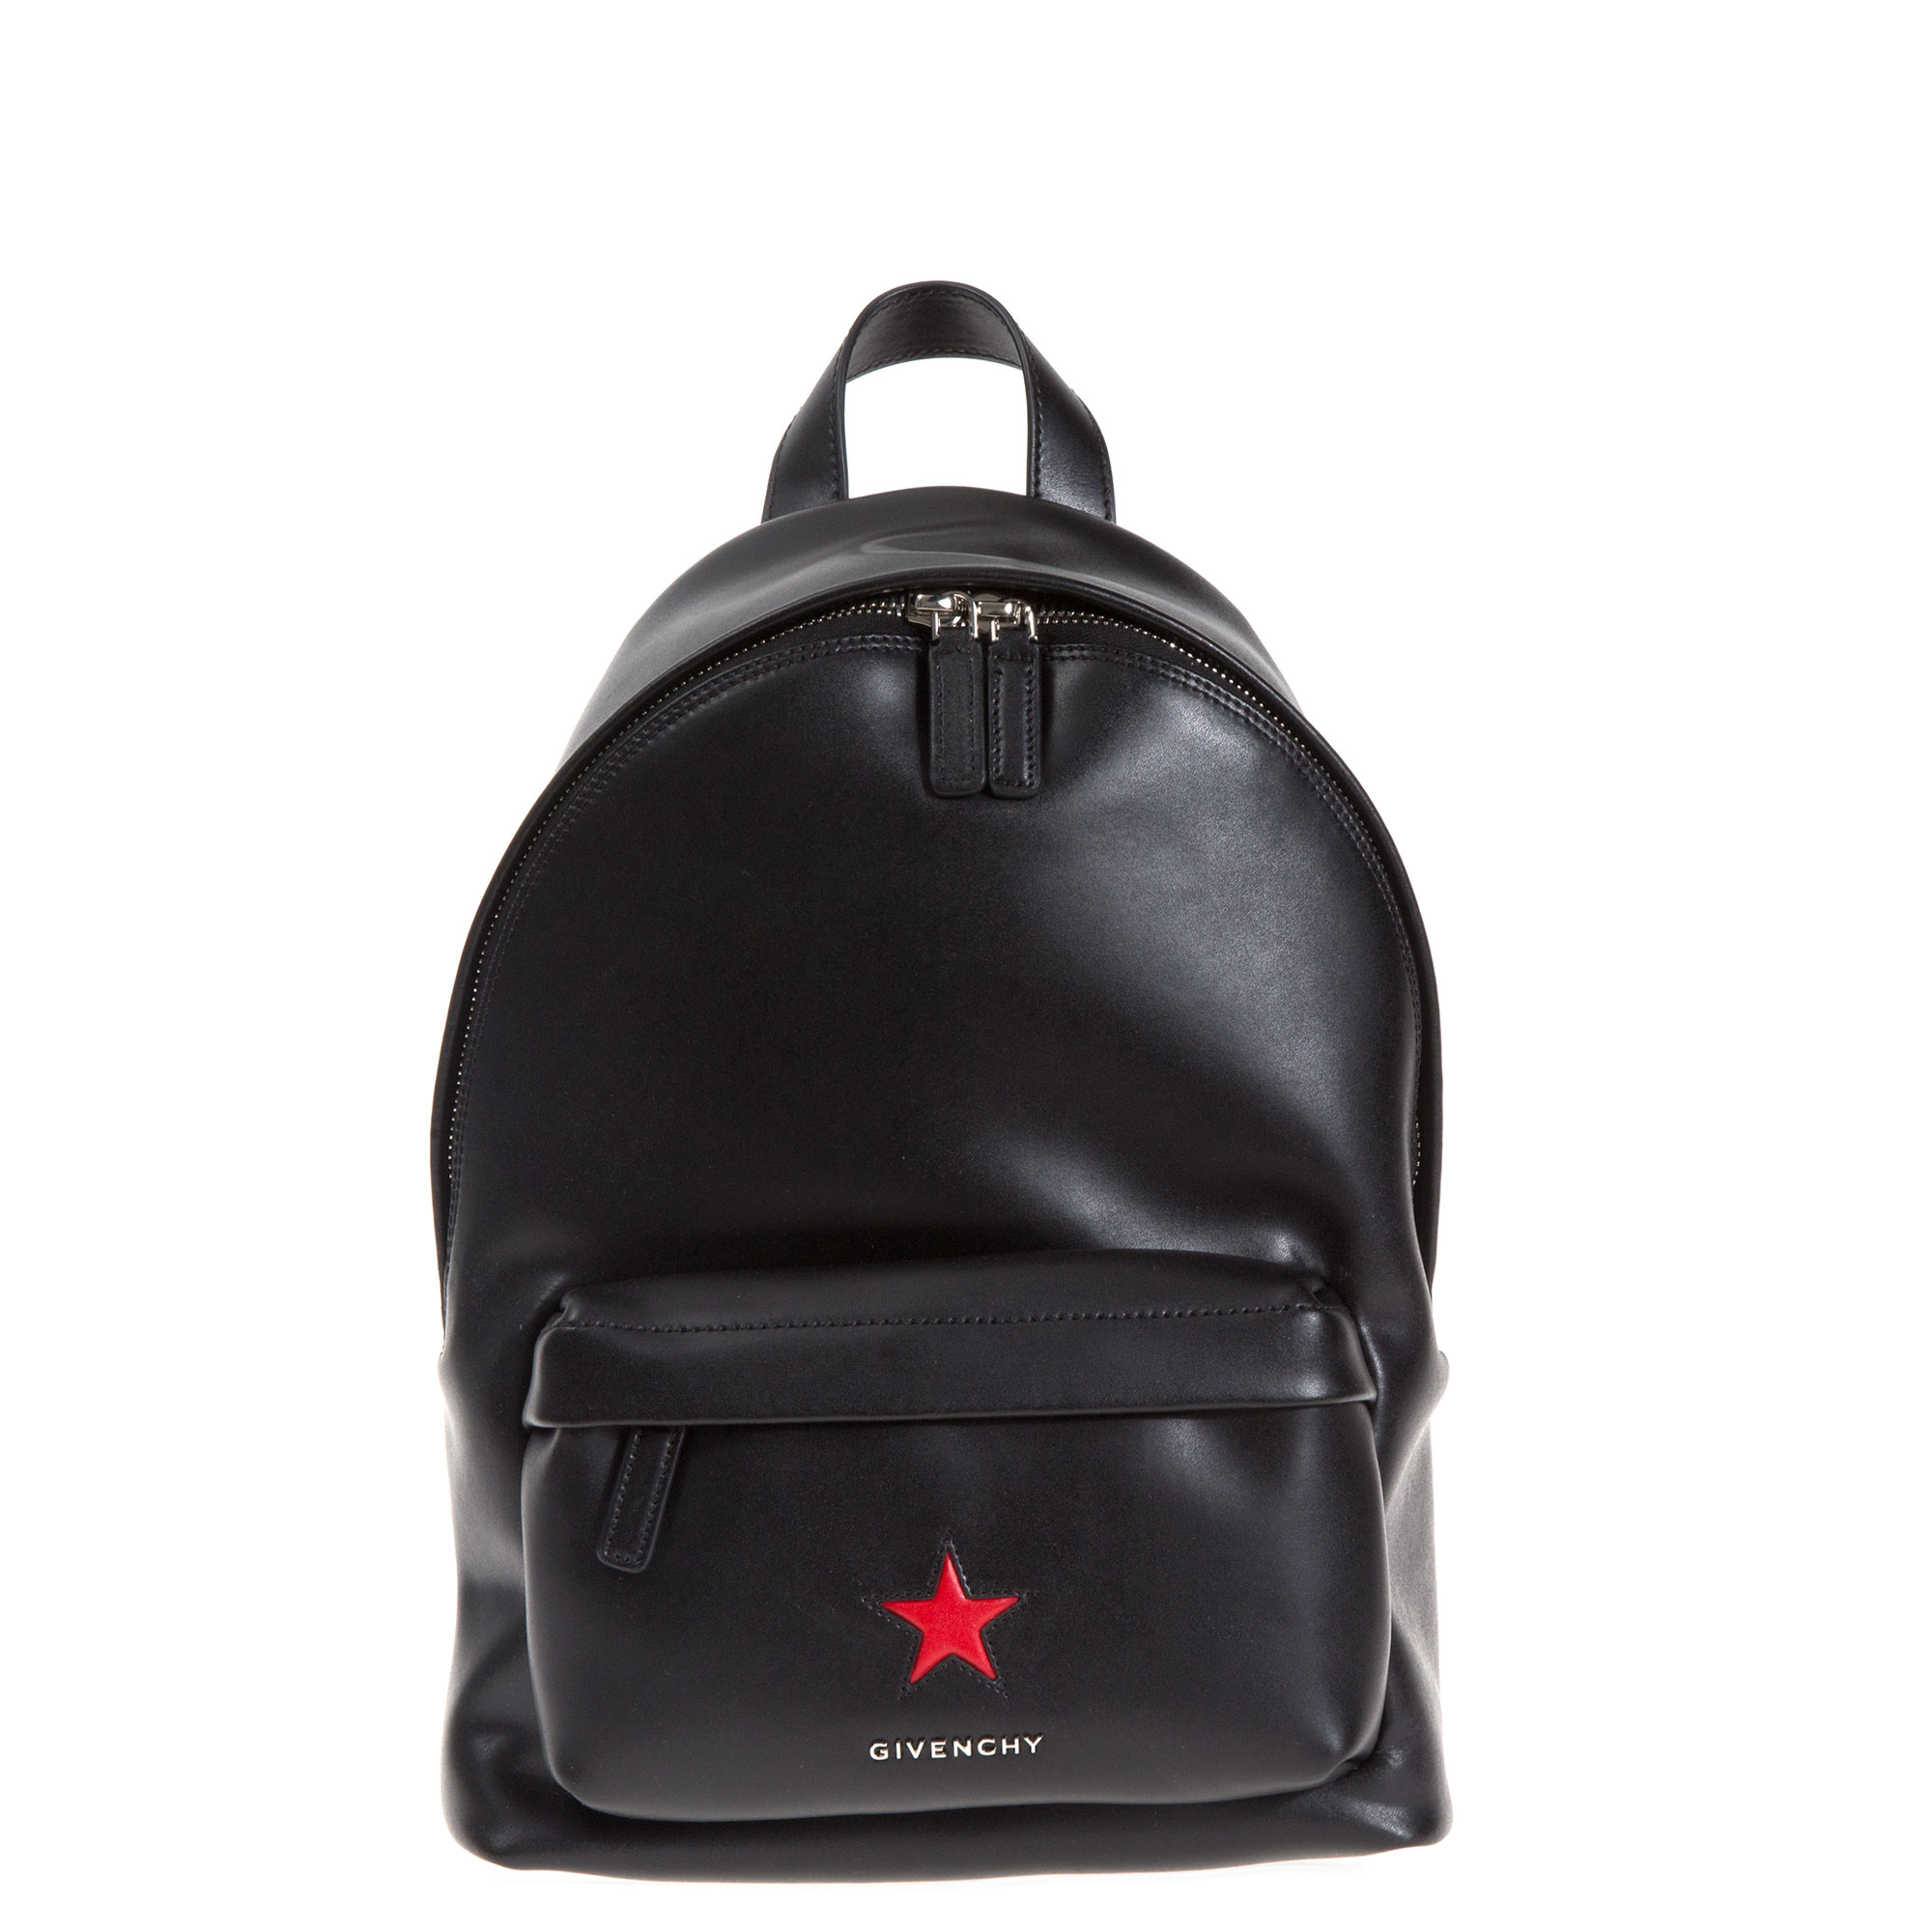 284924eb3d3f Givenchy Mini Backpack in Black - Lyst